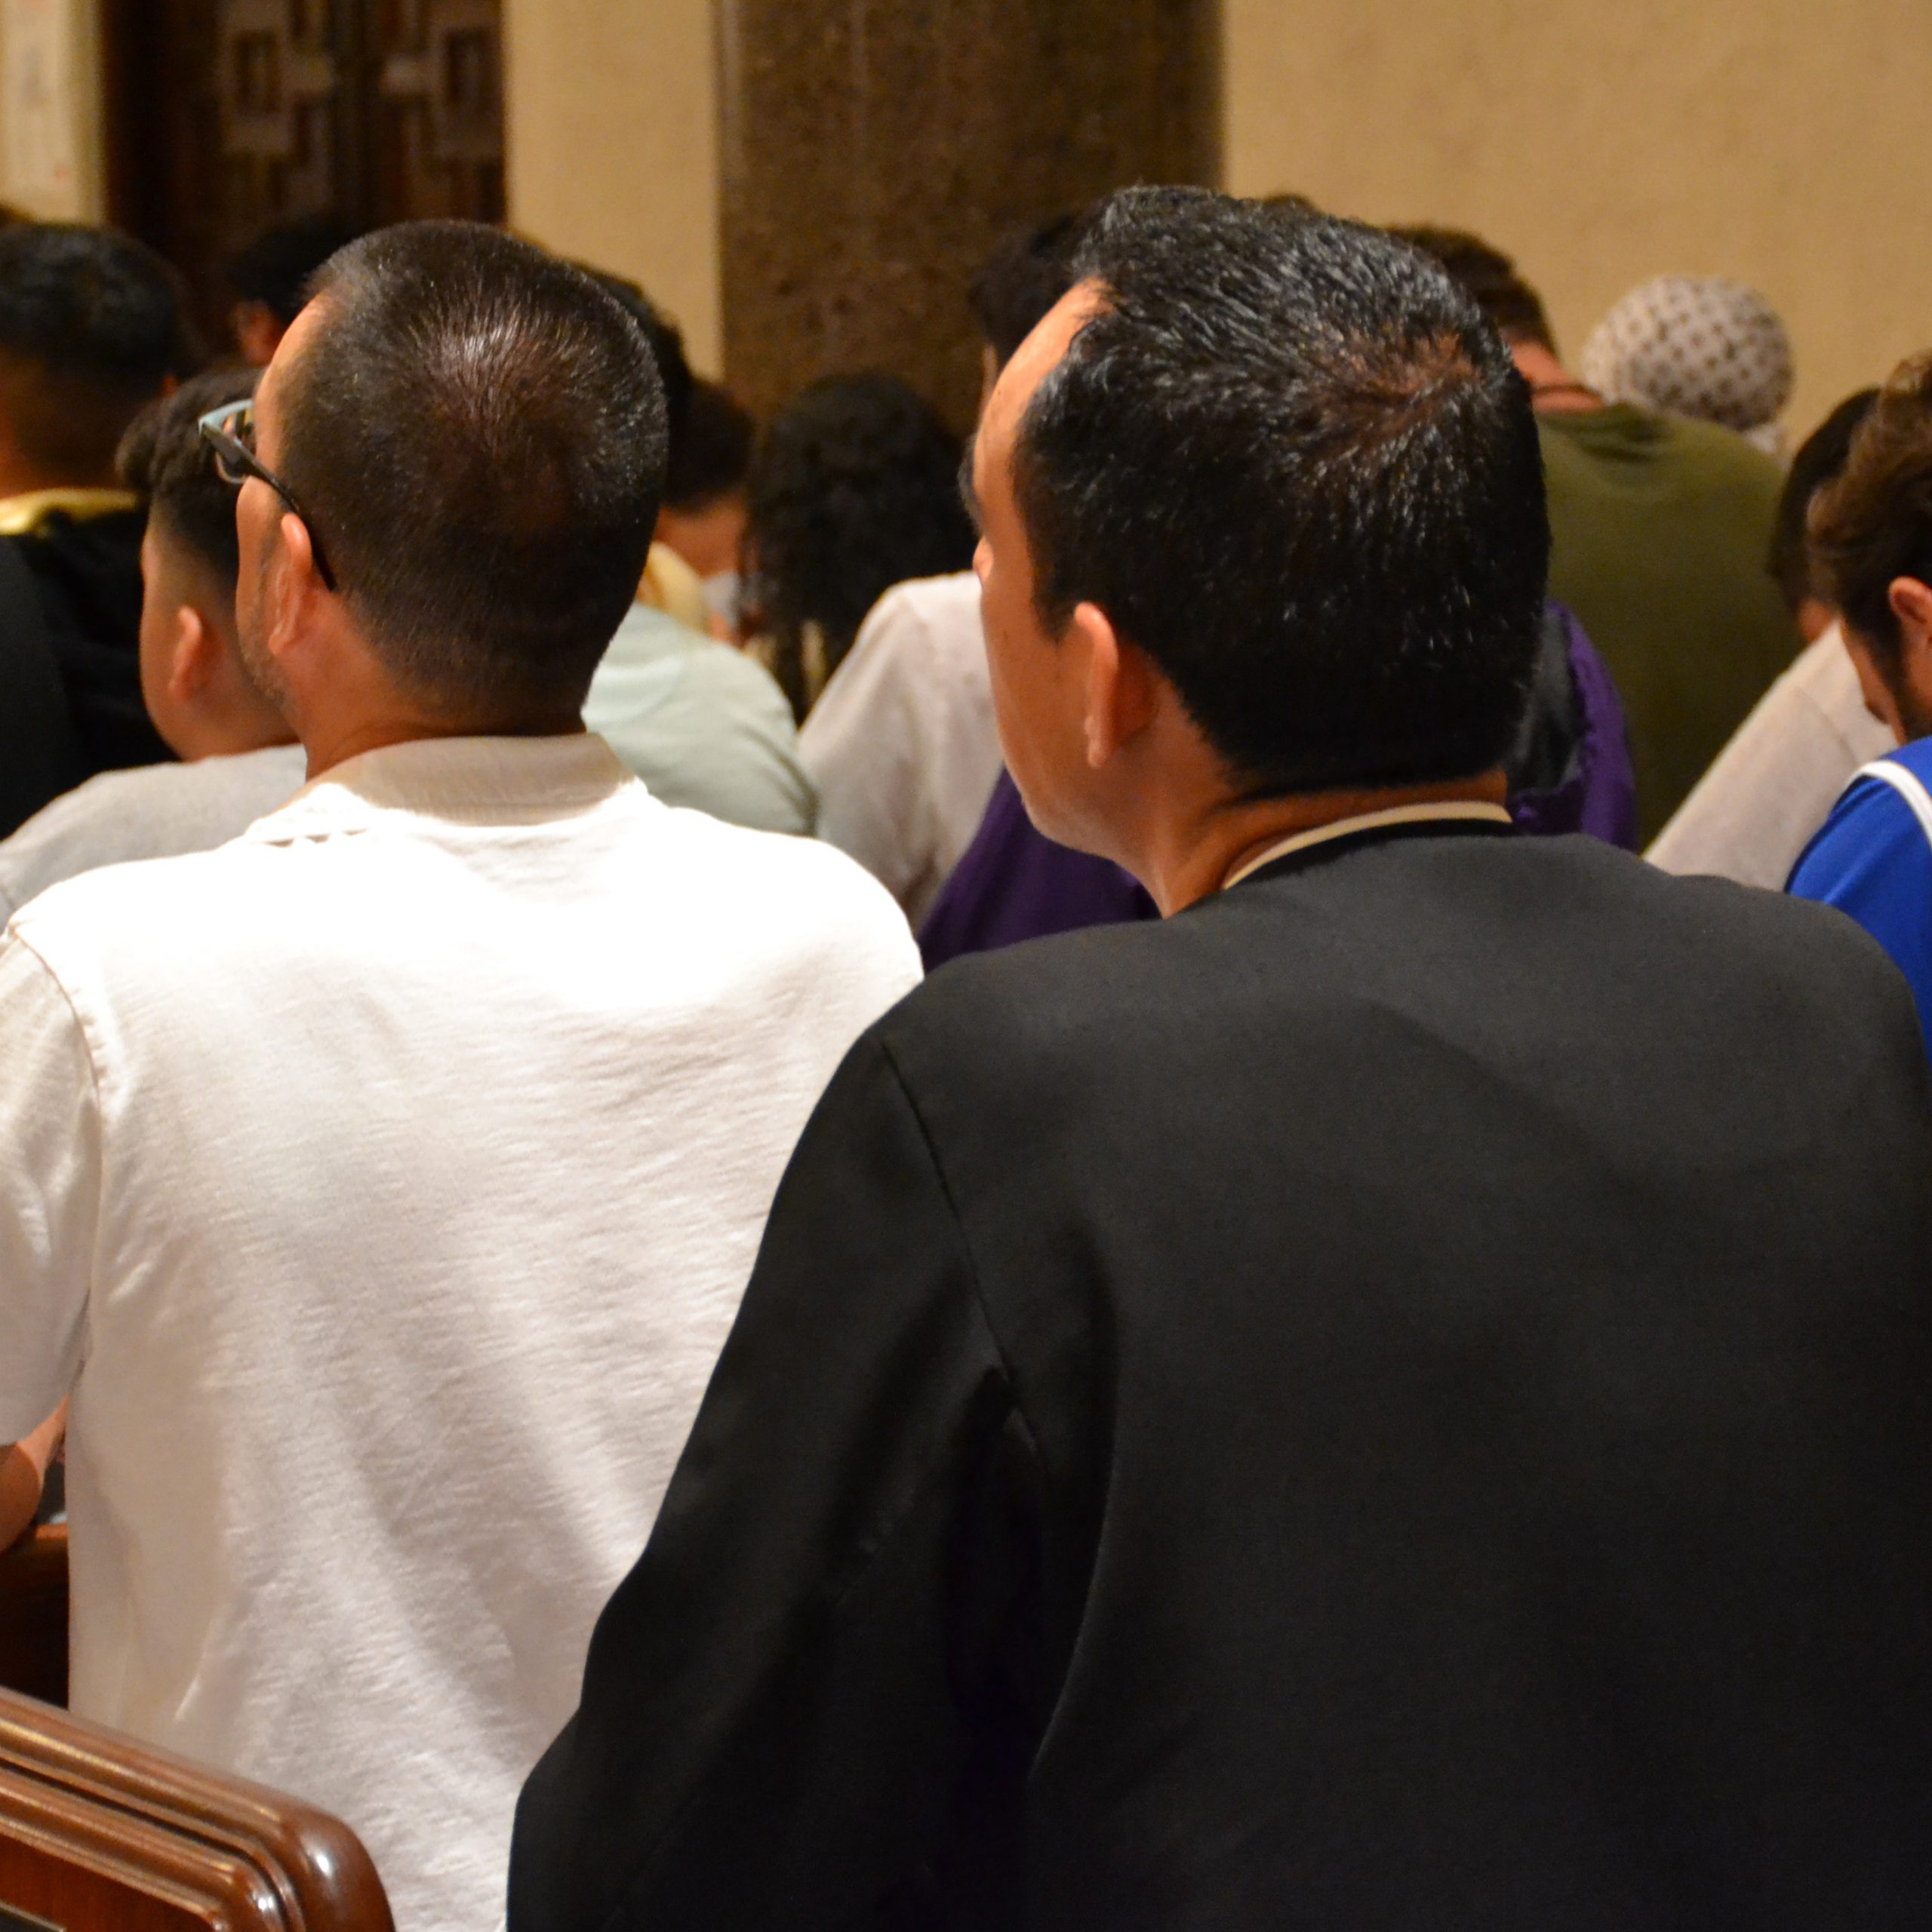 What are the initial steps in discerning with the Brothers?